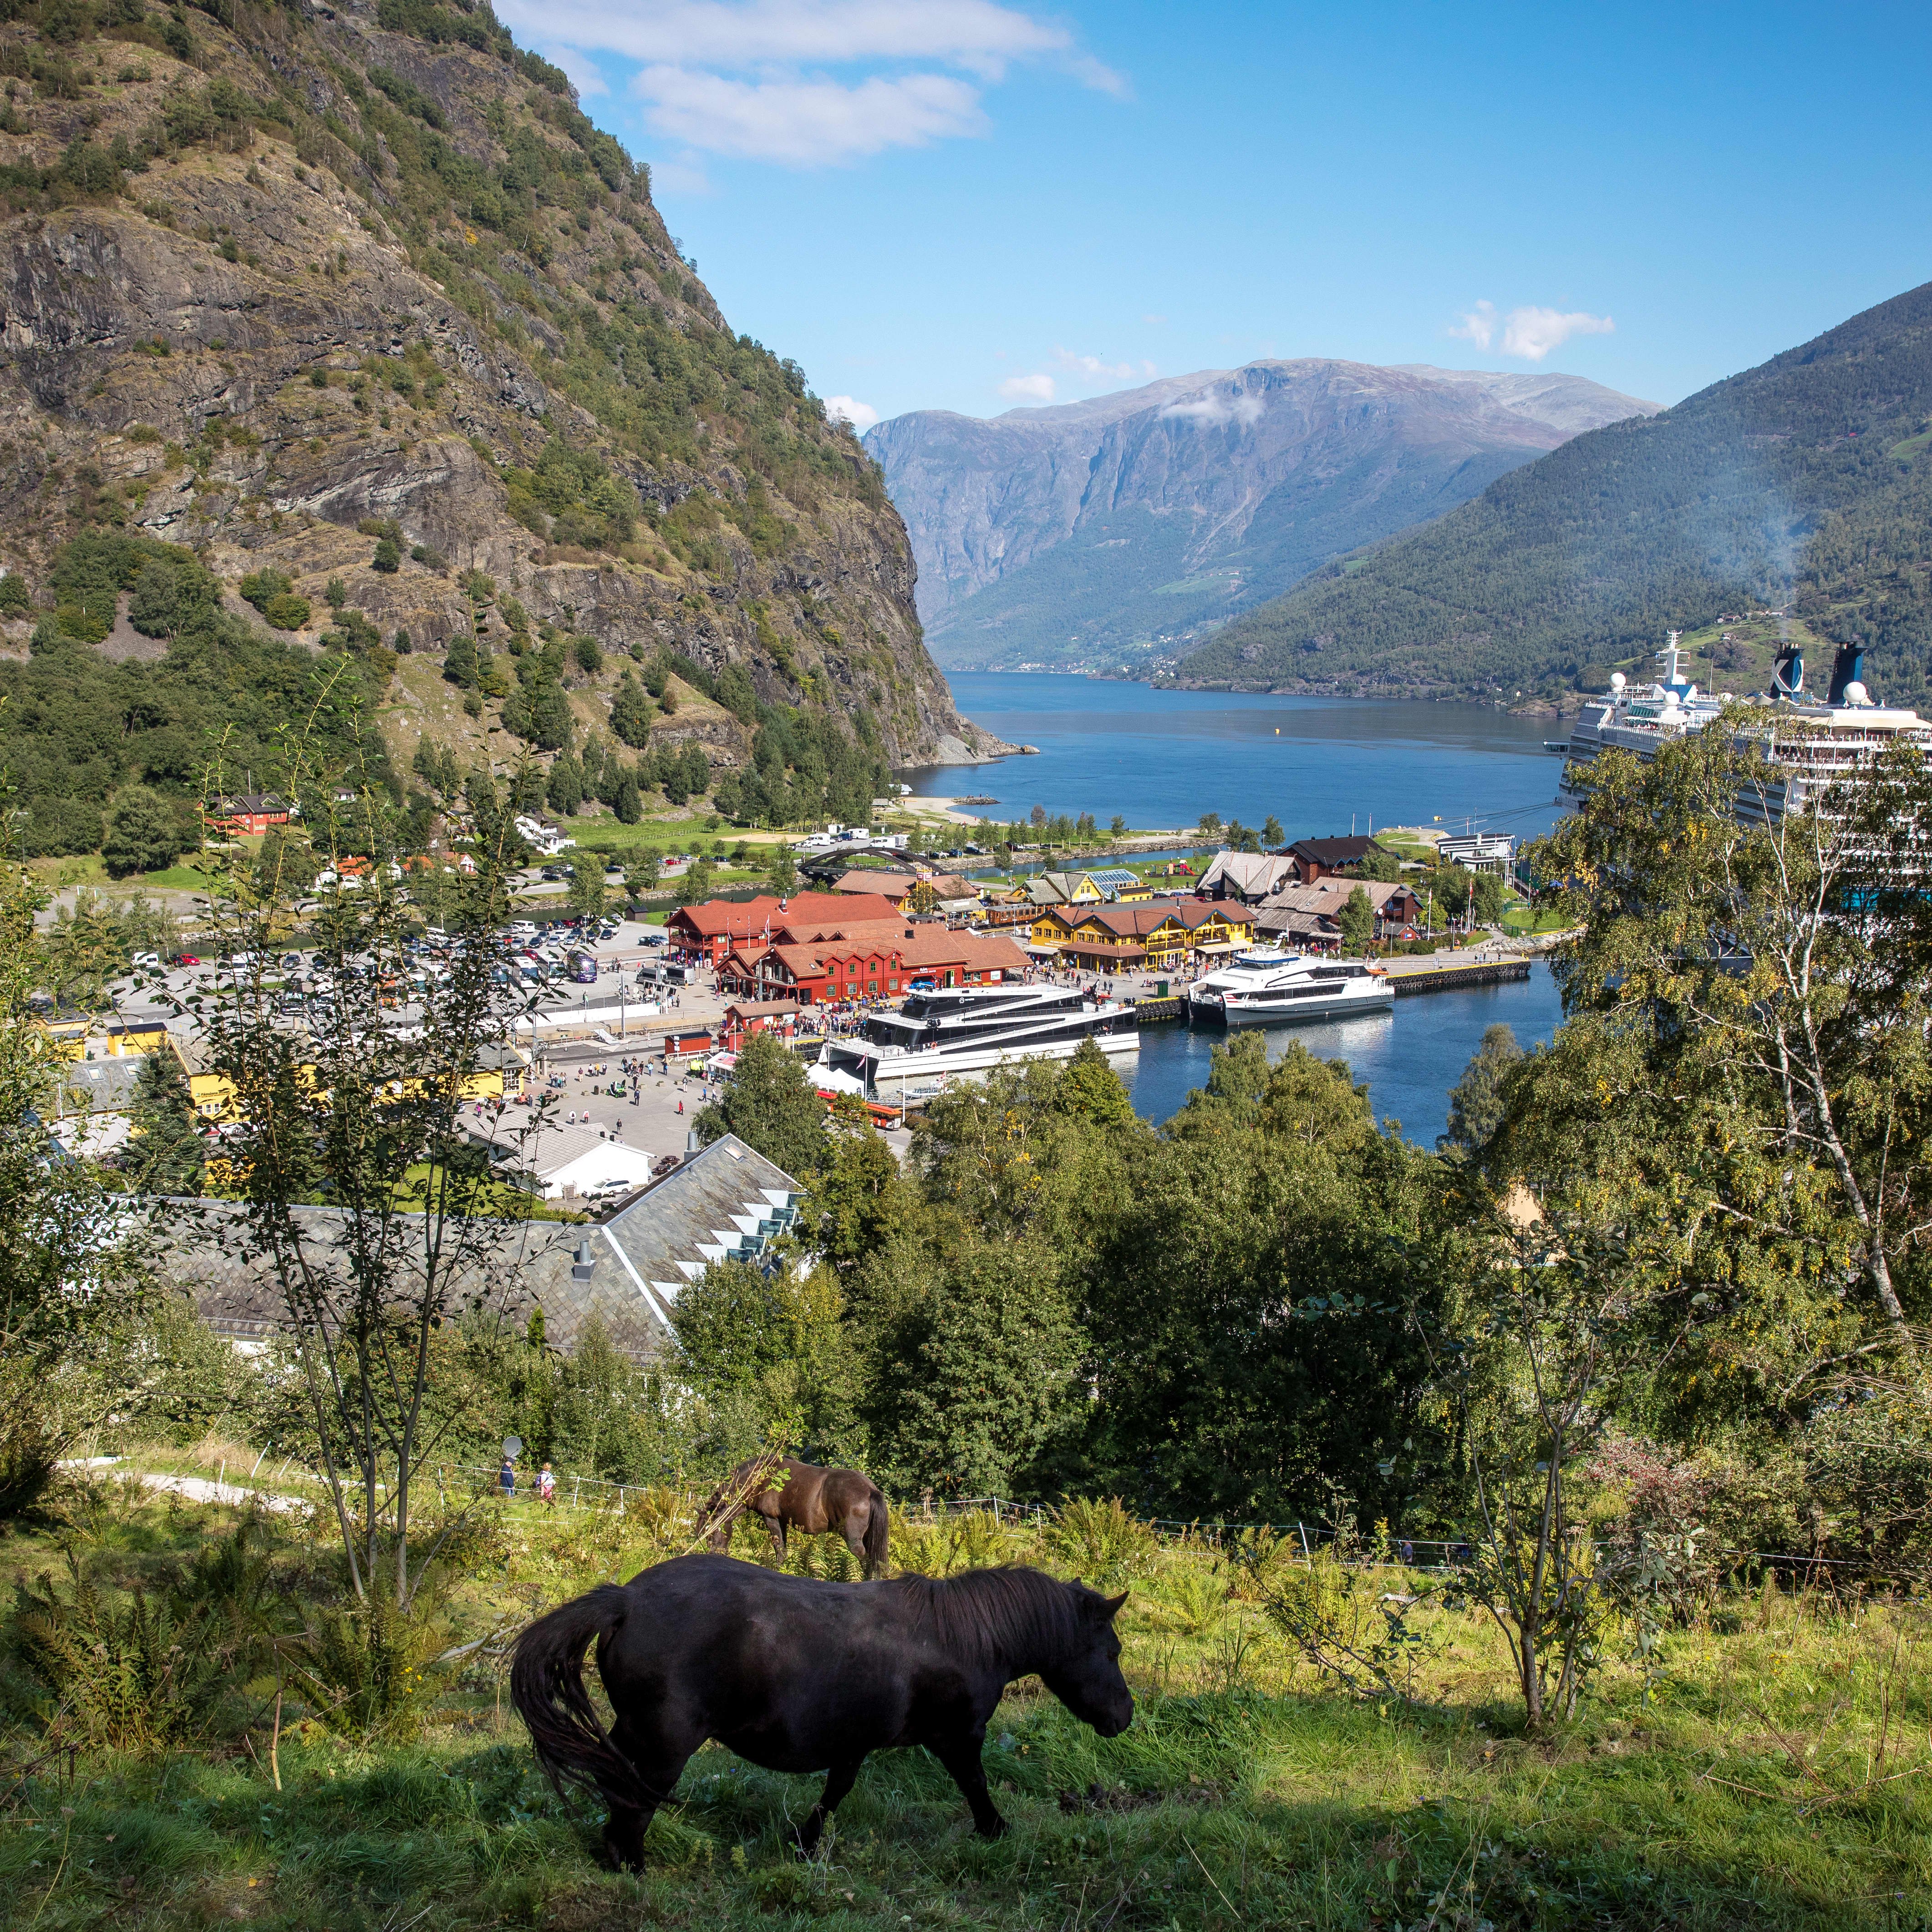 A view of Flam seen from the hillside above the village. A black horse is walking in the foreground.